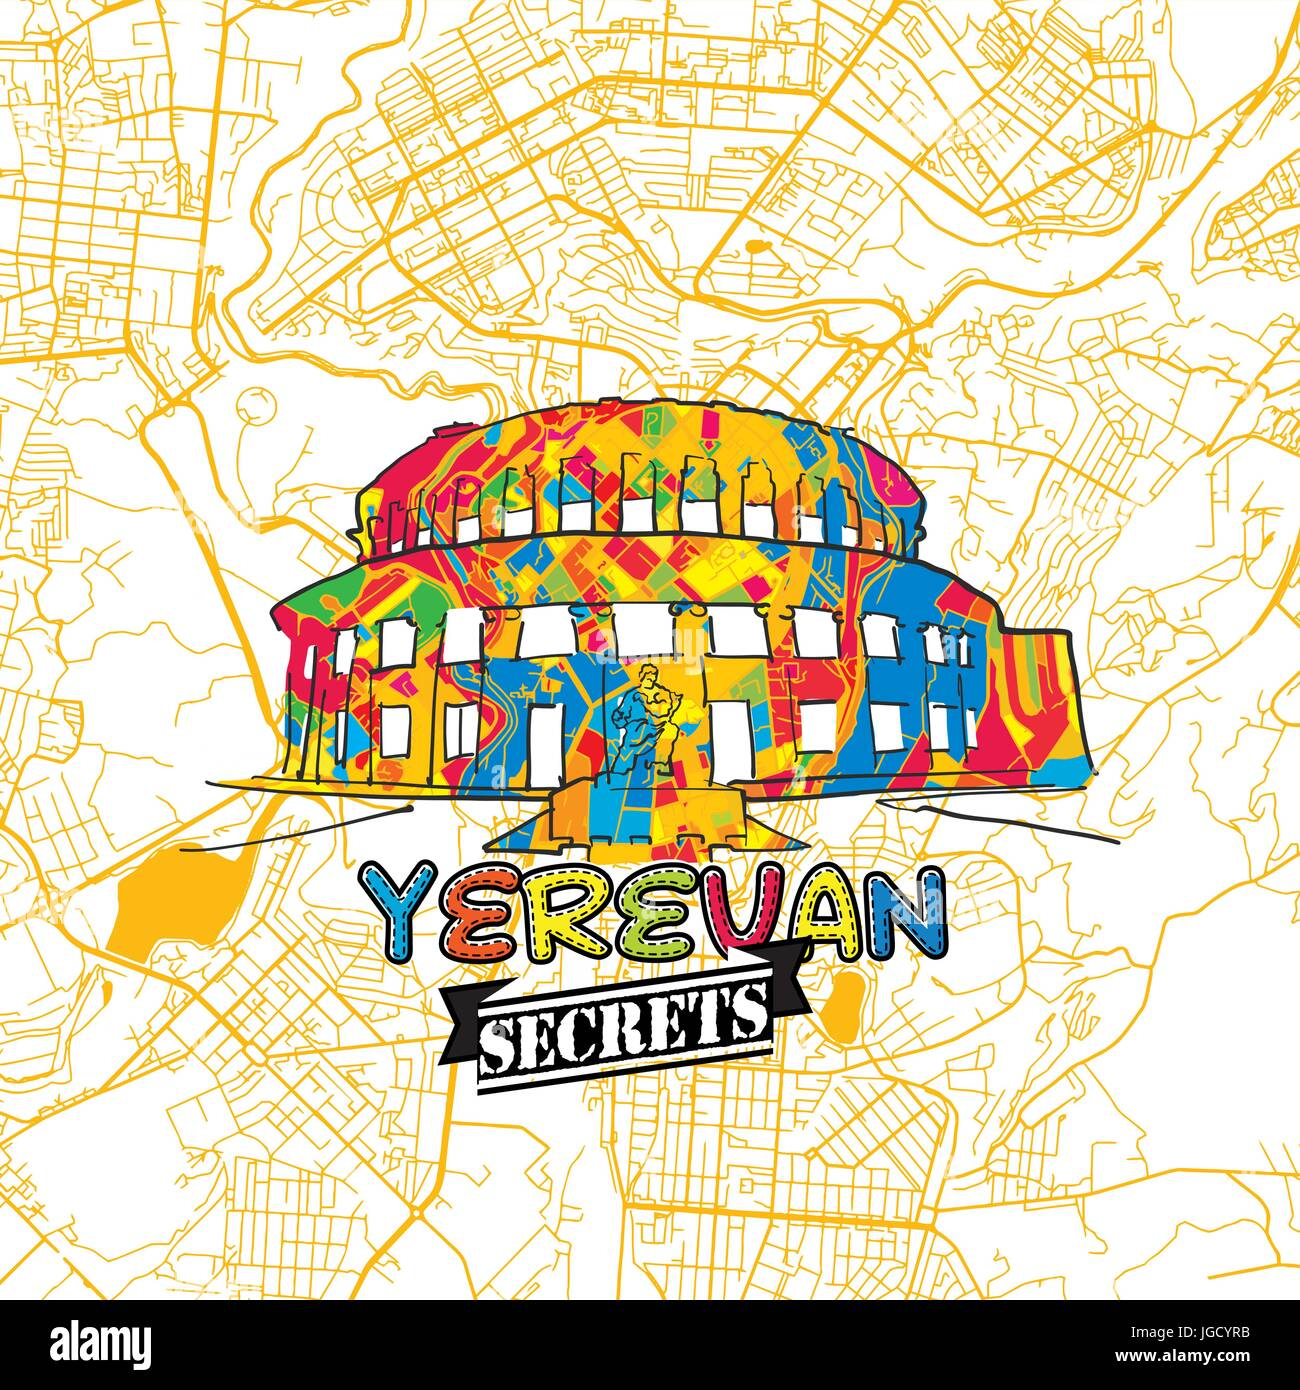 Yerevan Travel Secrets Art Map for mapping experts and travel guides. Handmade city logo, typo badge and hand drawn - Stock Image